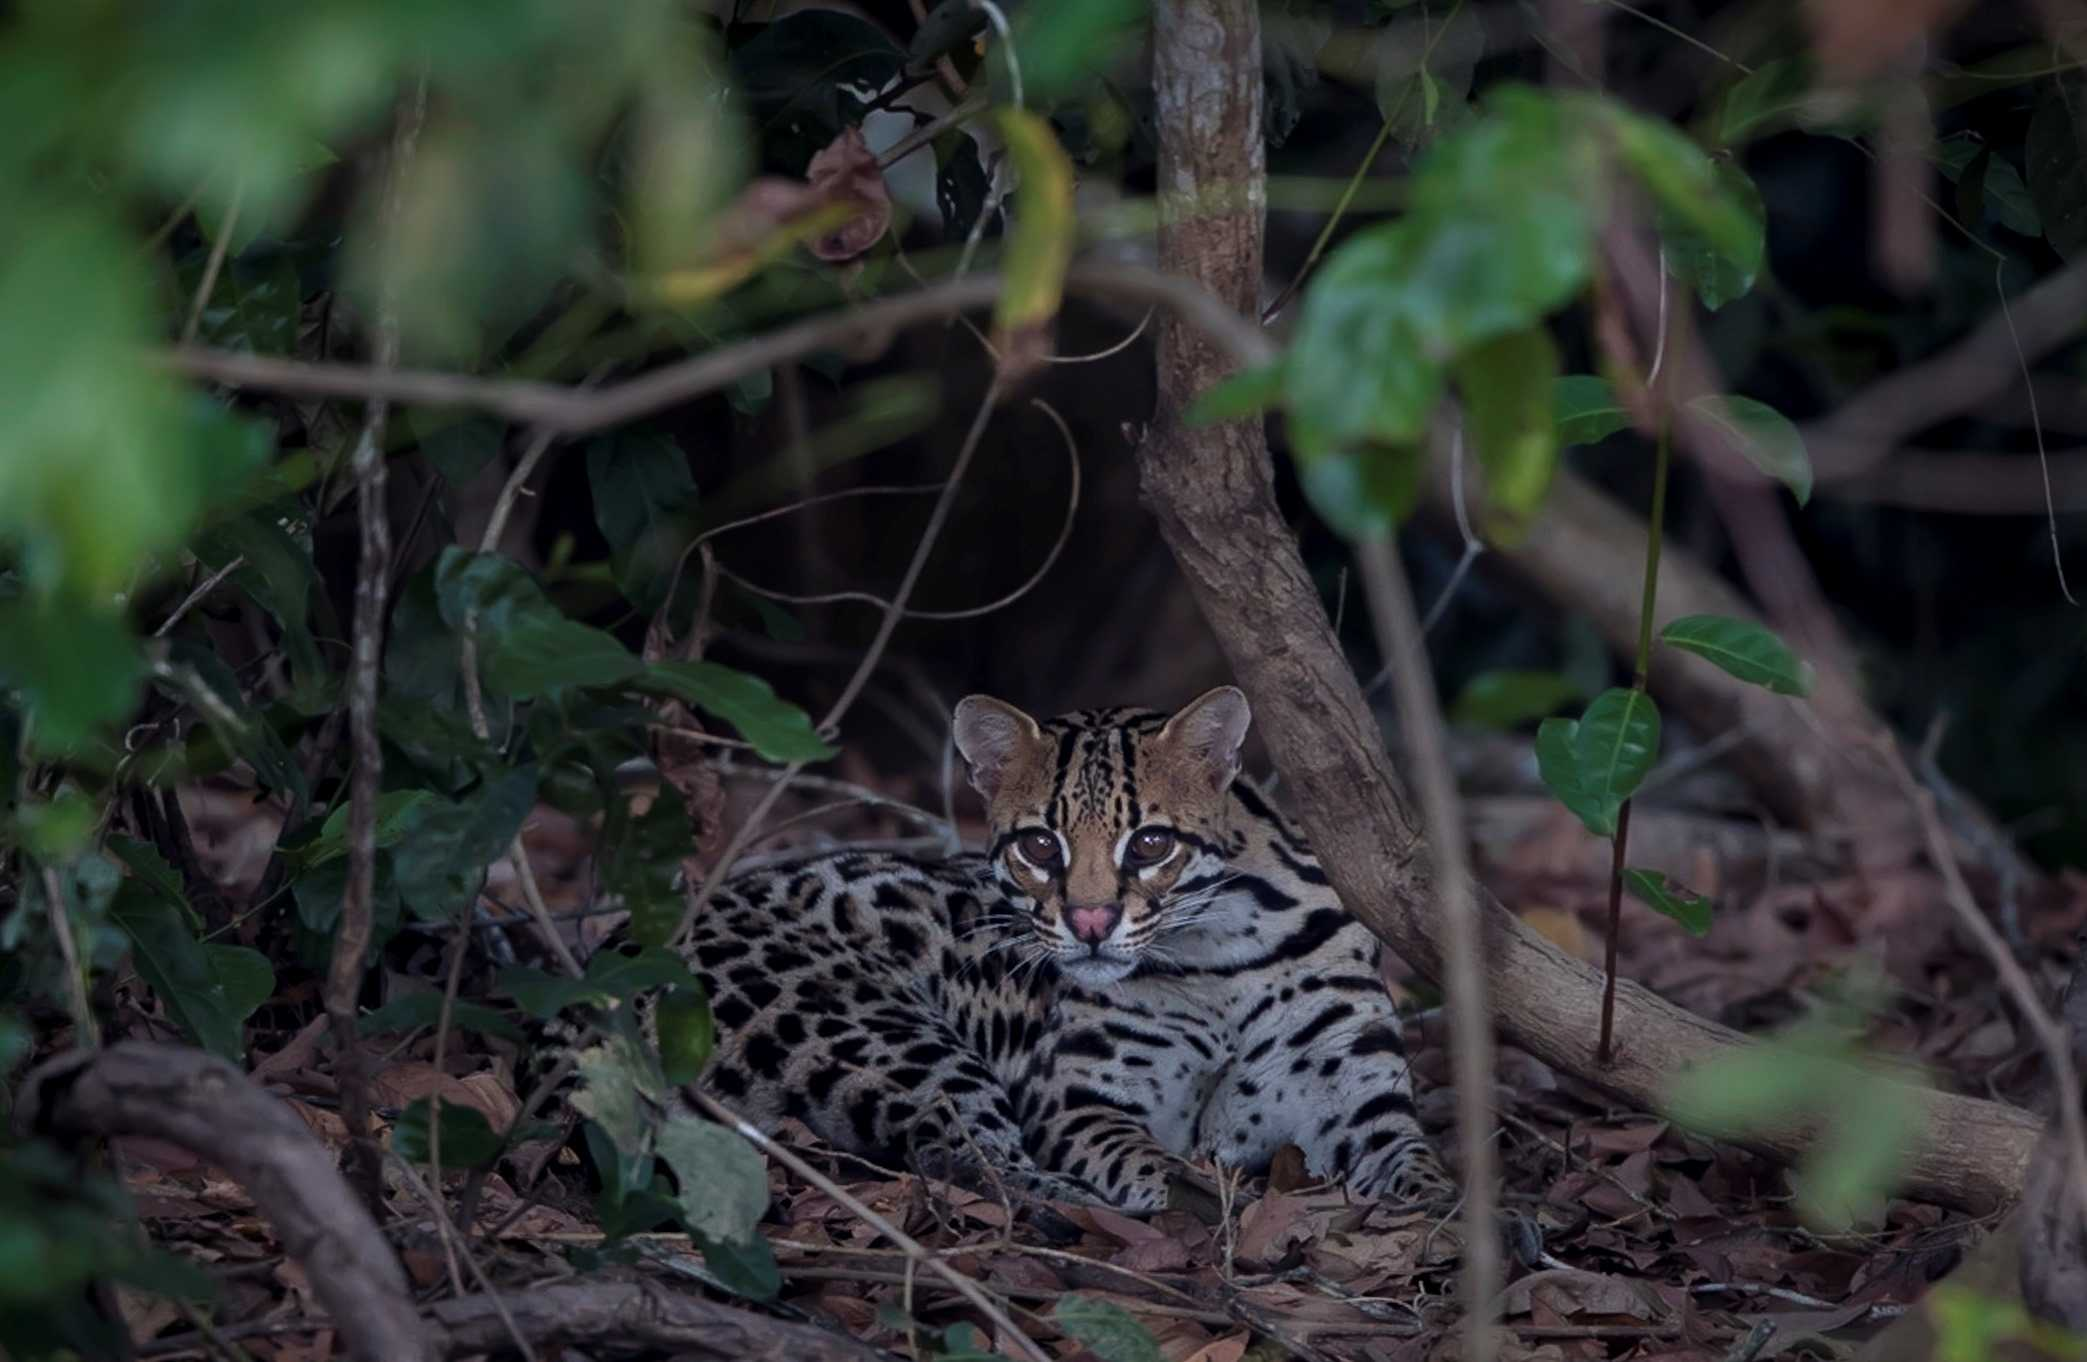 Ocelot in the Pantanal, Brazil (Image by Paul Goldstein)